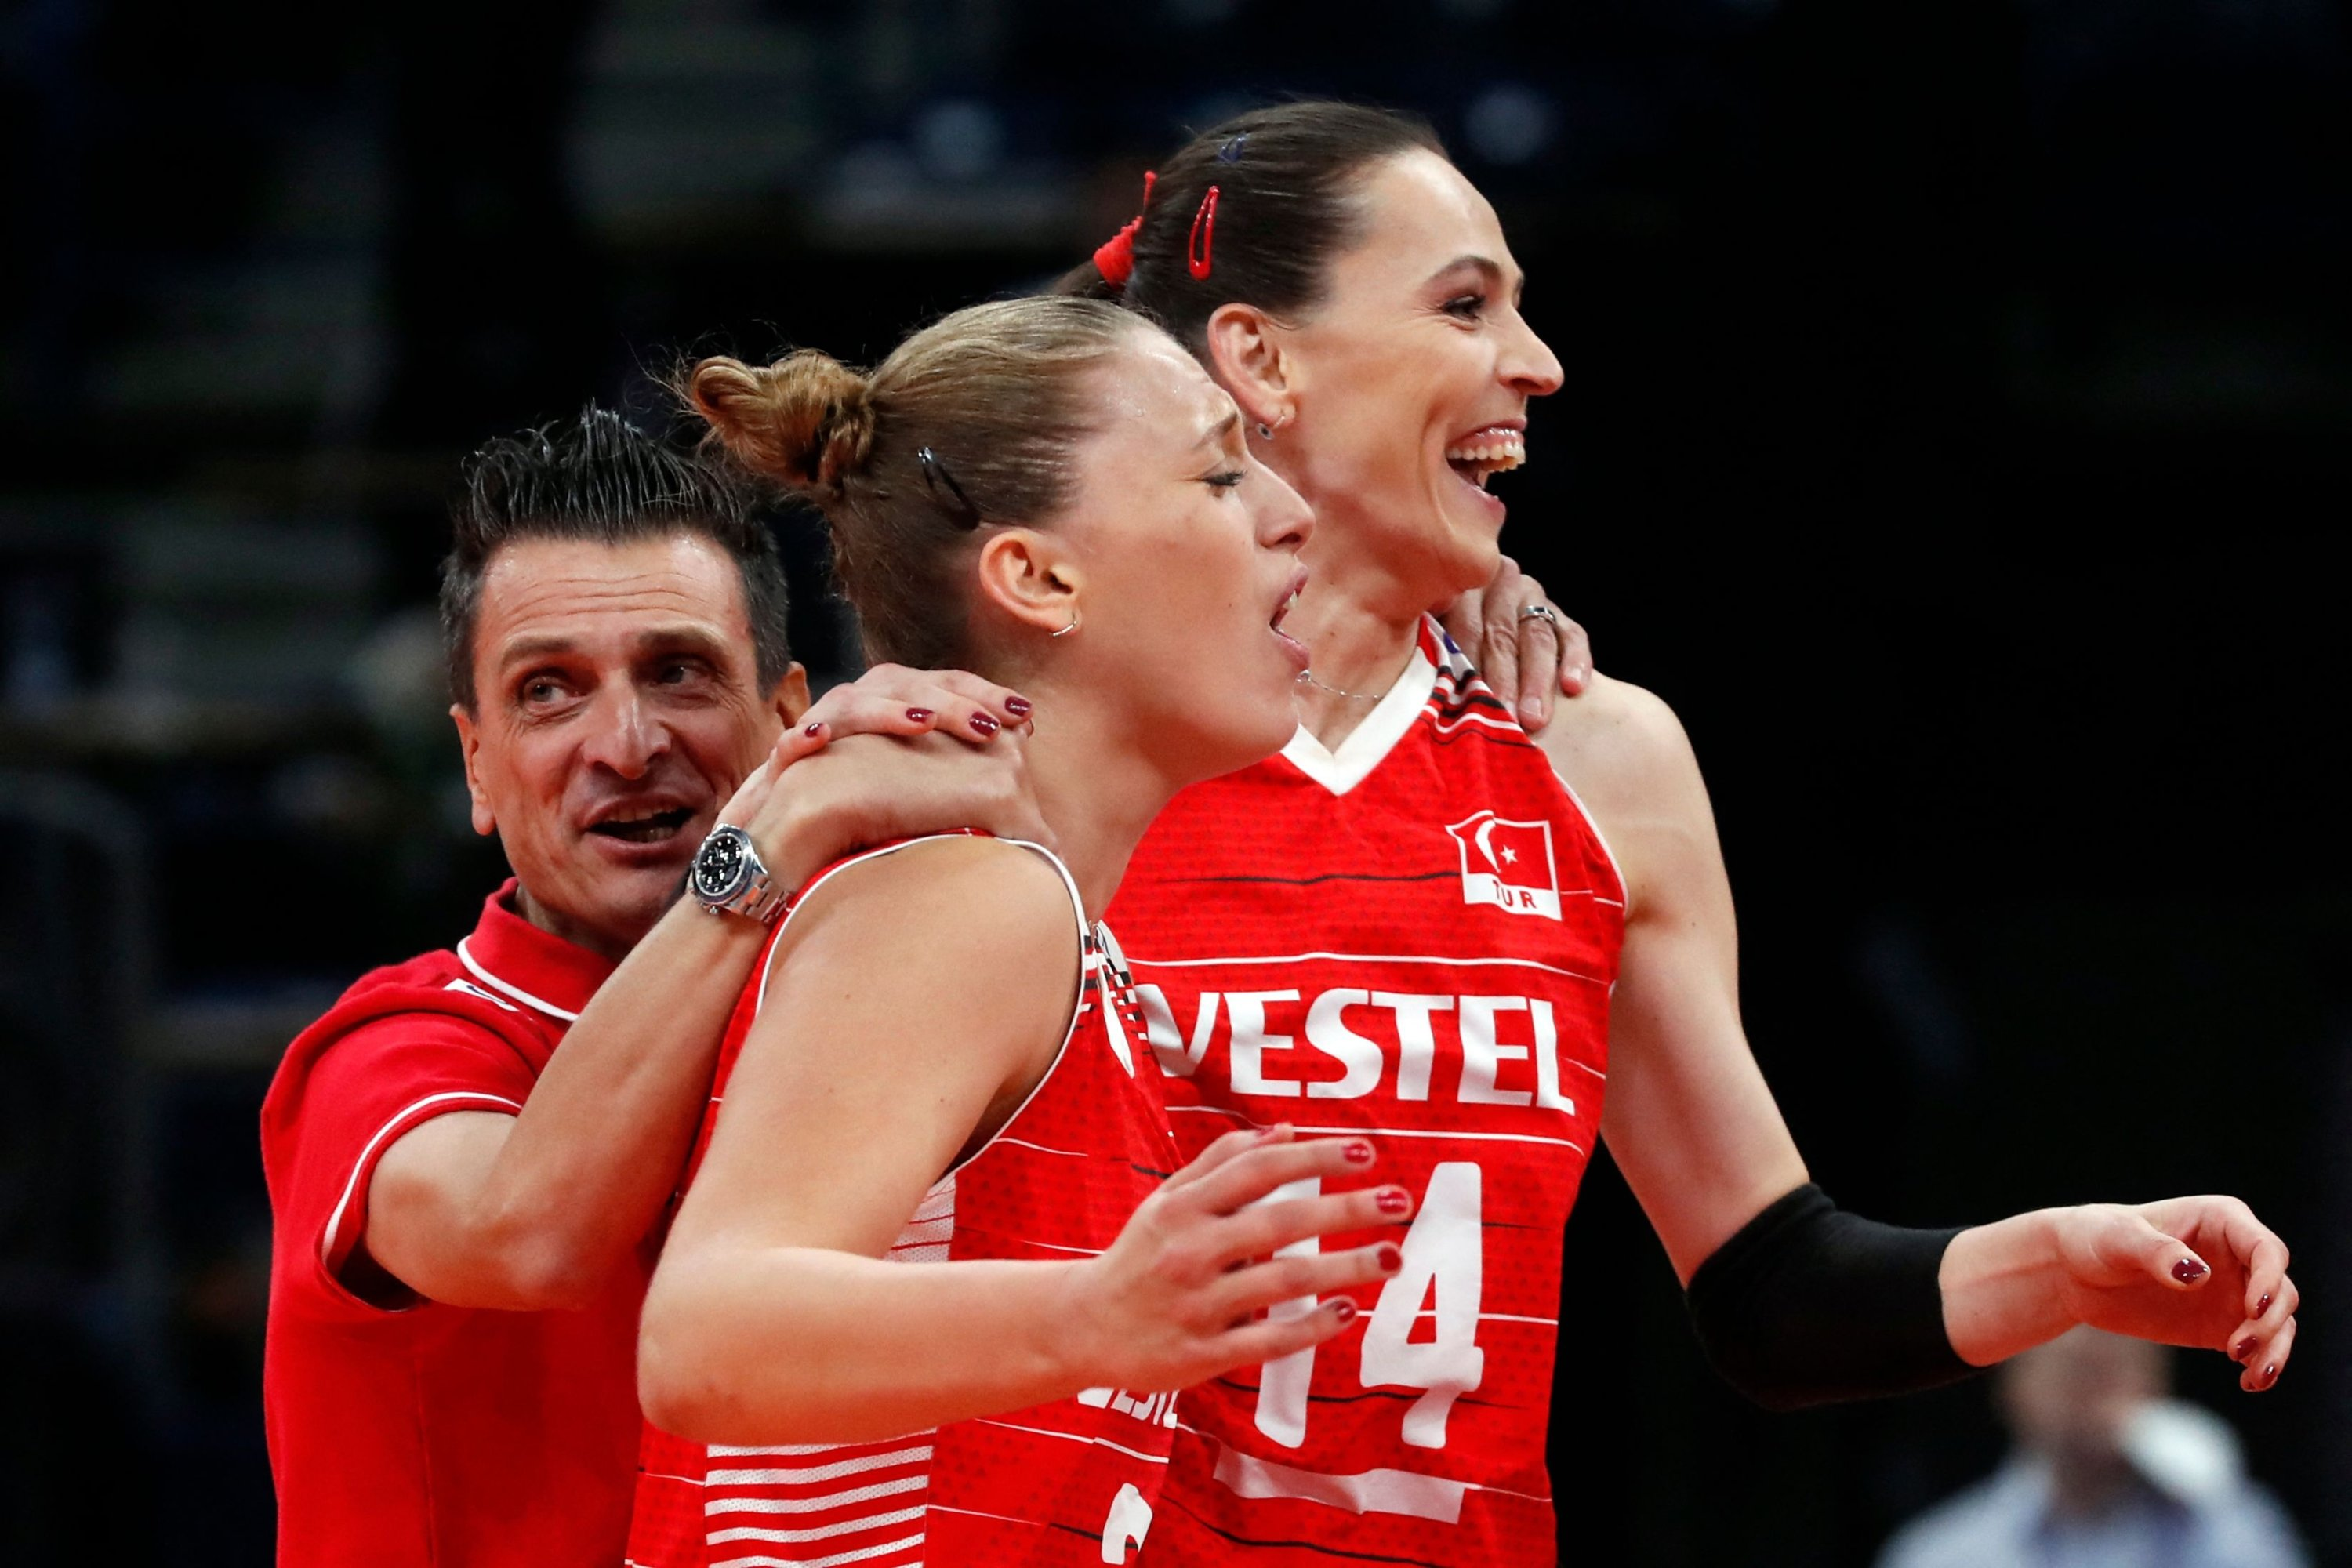 (L-R) Turkey's head coach Giovanni Guidetti, Cansu Özbay and Eda Erdem Dündar celebrate after winning the CEV EuroVolley 2021 women's volleyball match for third place between Turkey and the Netherlands, in Belgrade, Serbia, Sept. 4, 2021. (AFP Photo)